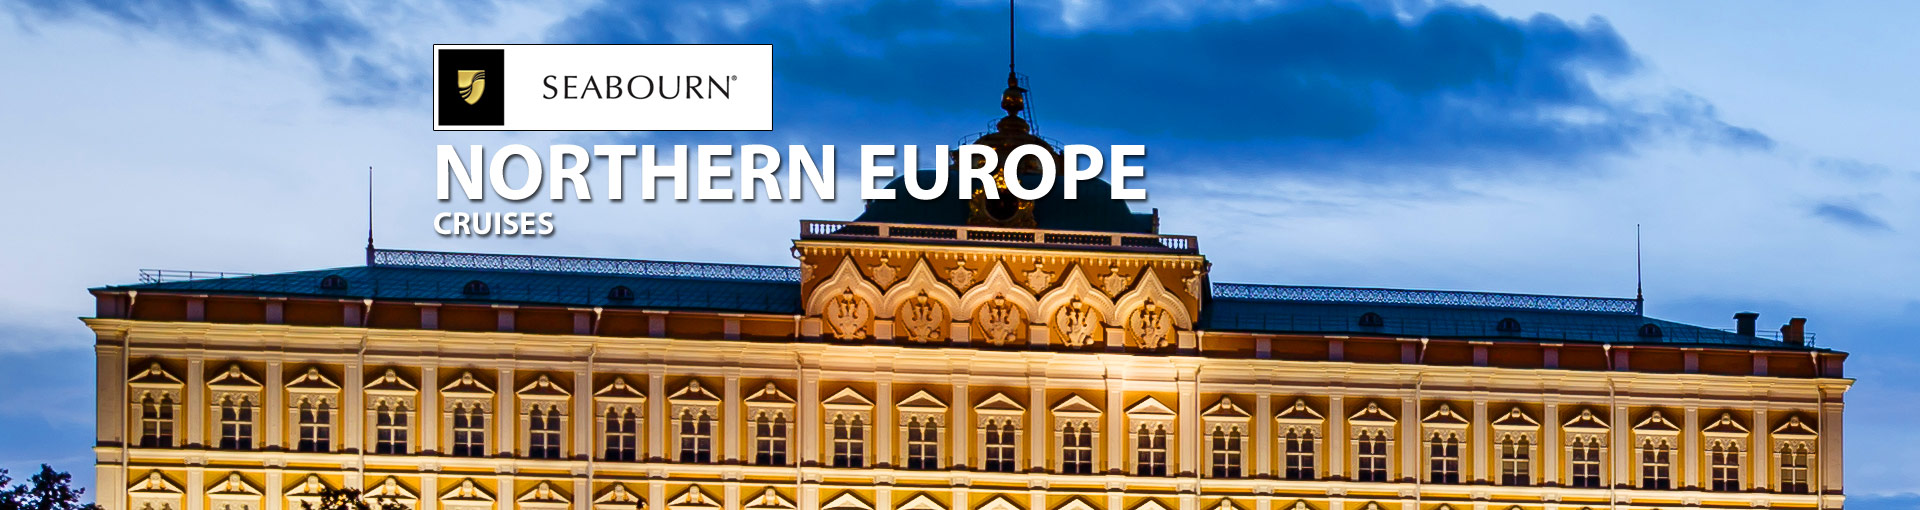 Seabourn Cruise Line Northern Europe Cruises